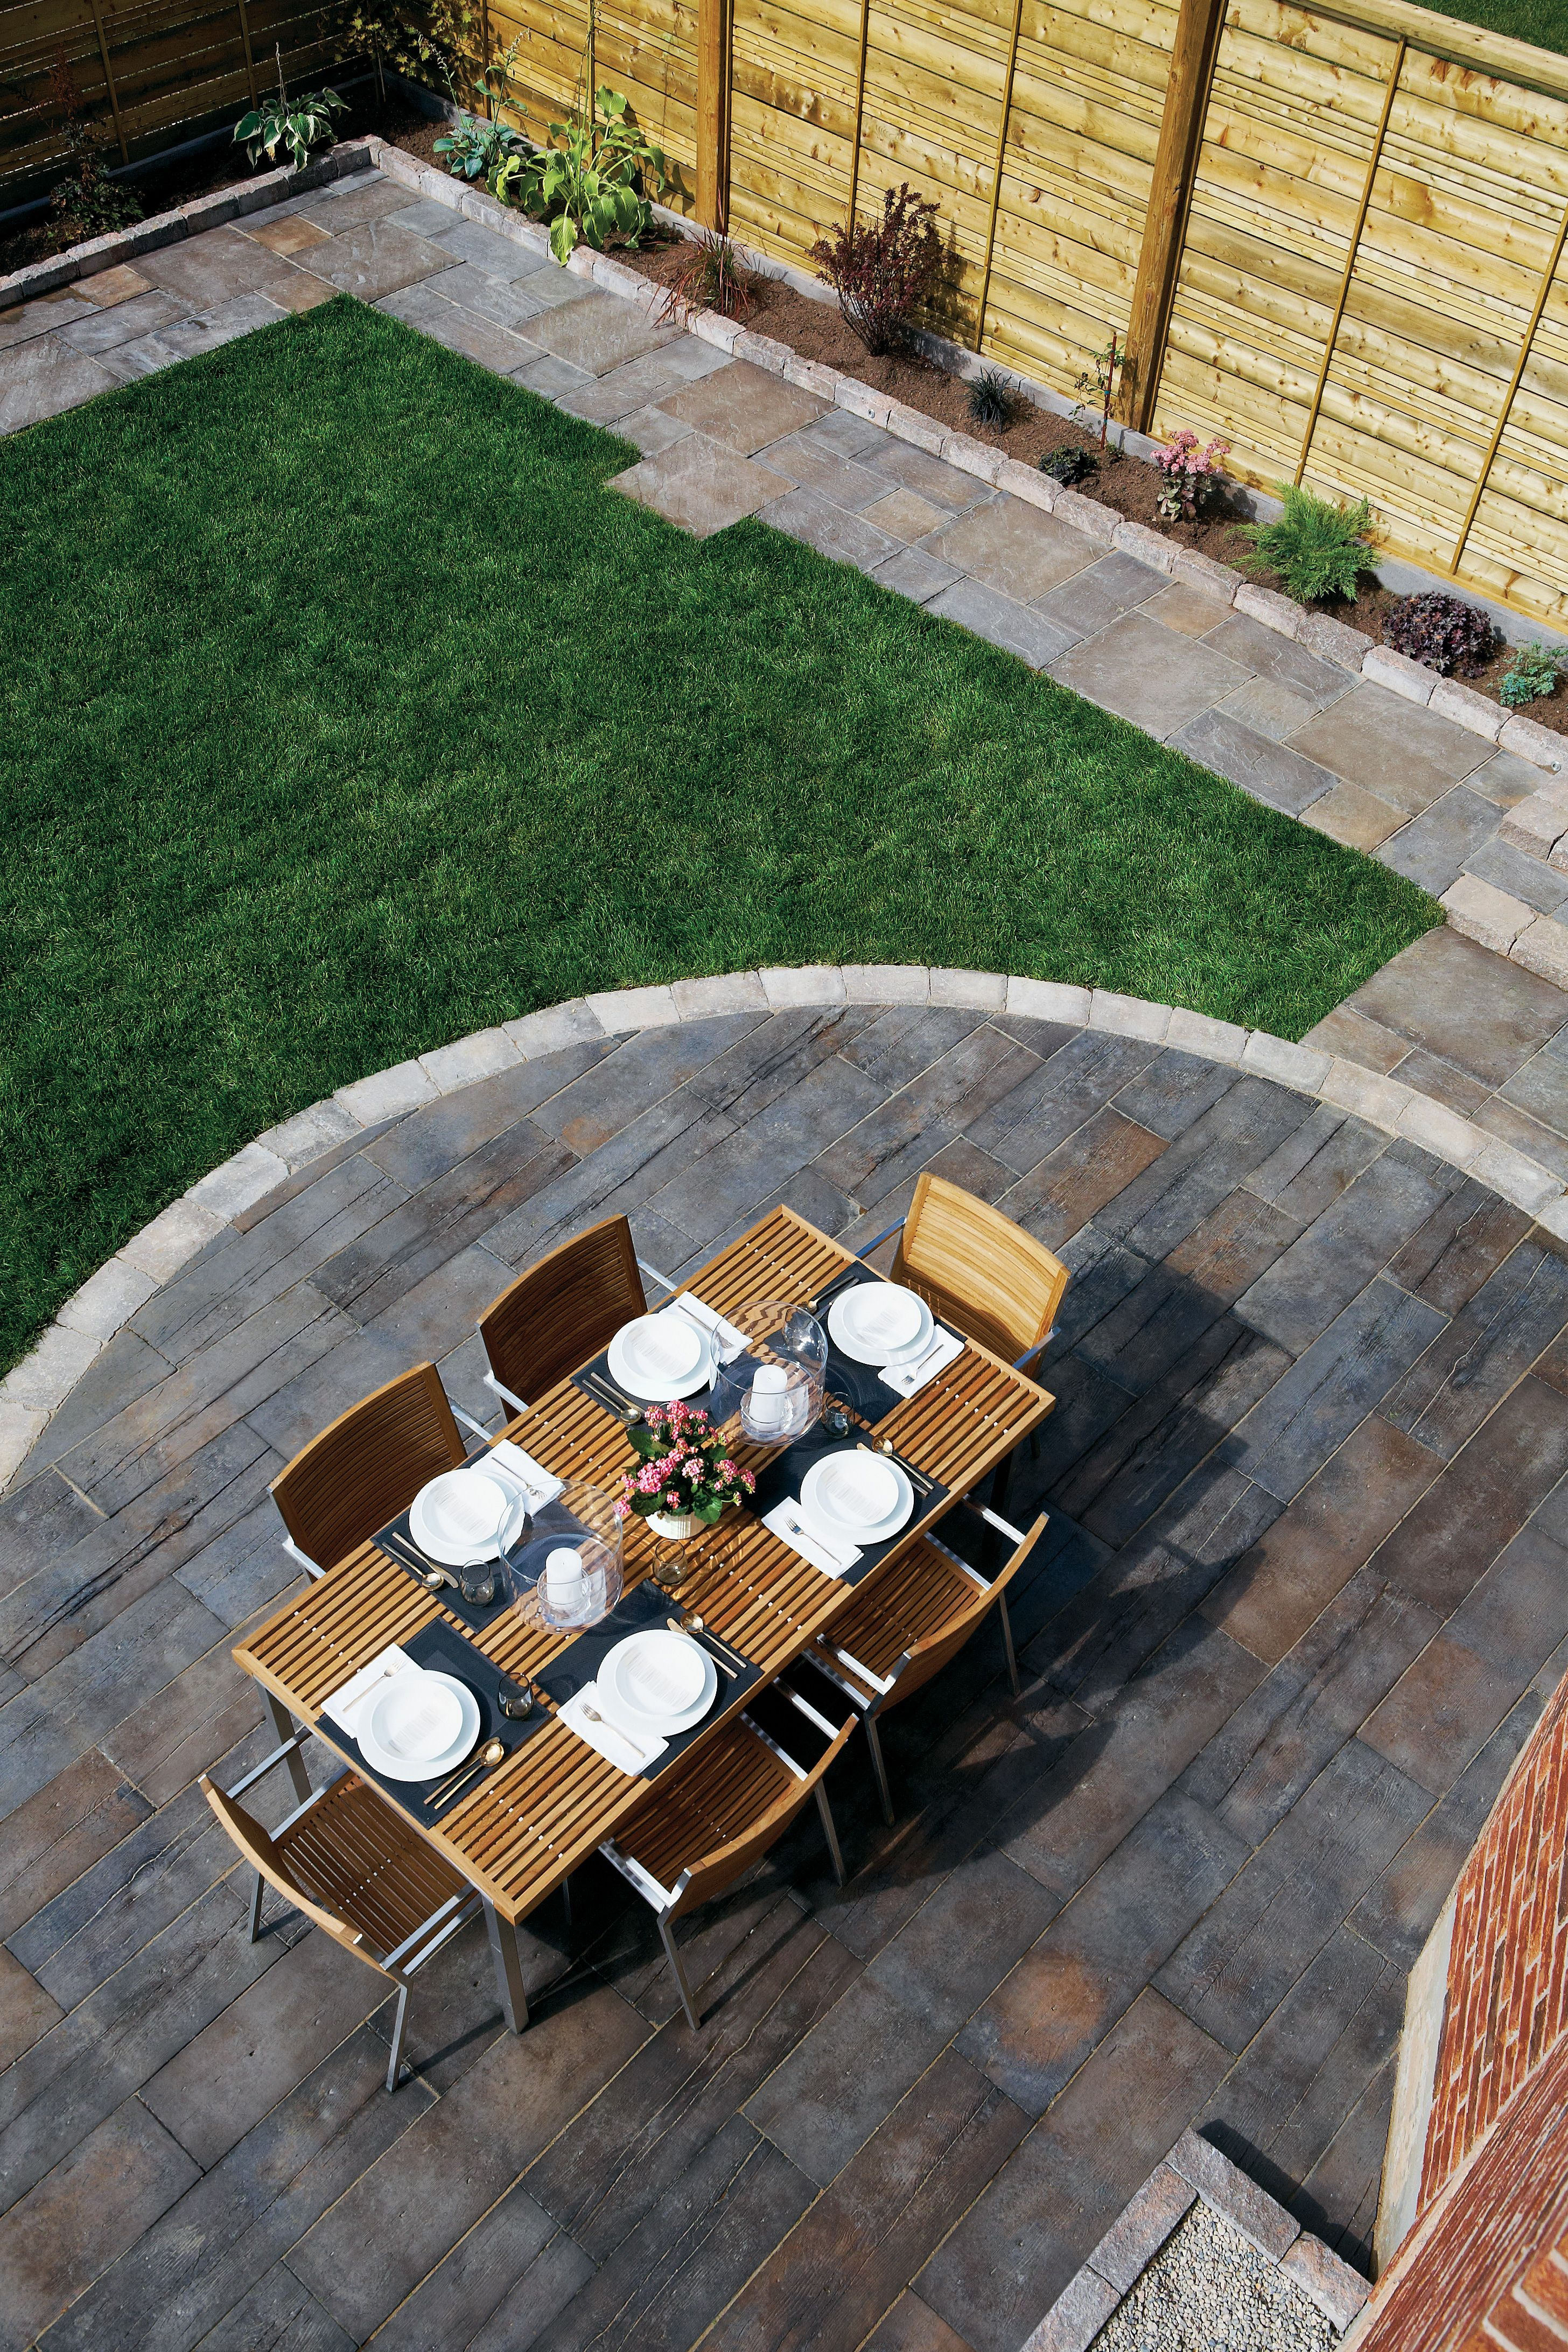 Brooklin Barnboard concrete patio slabs I want stamped concrete that looks like rustic wood with